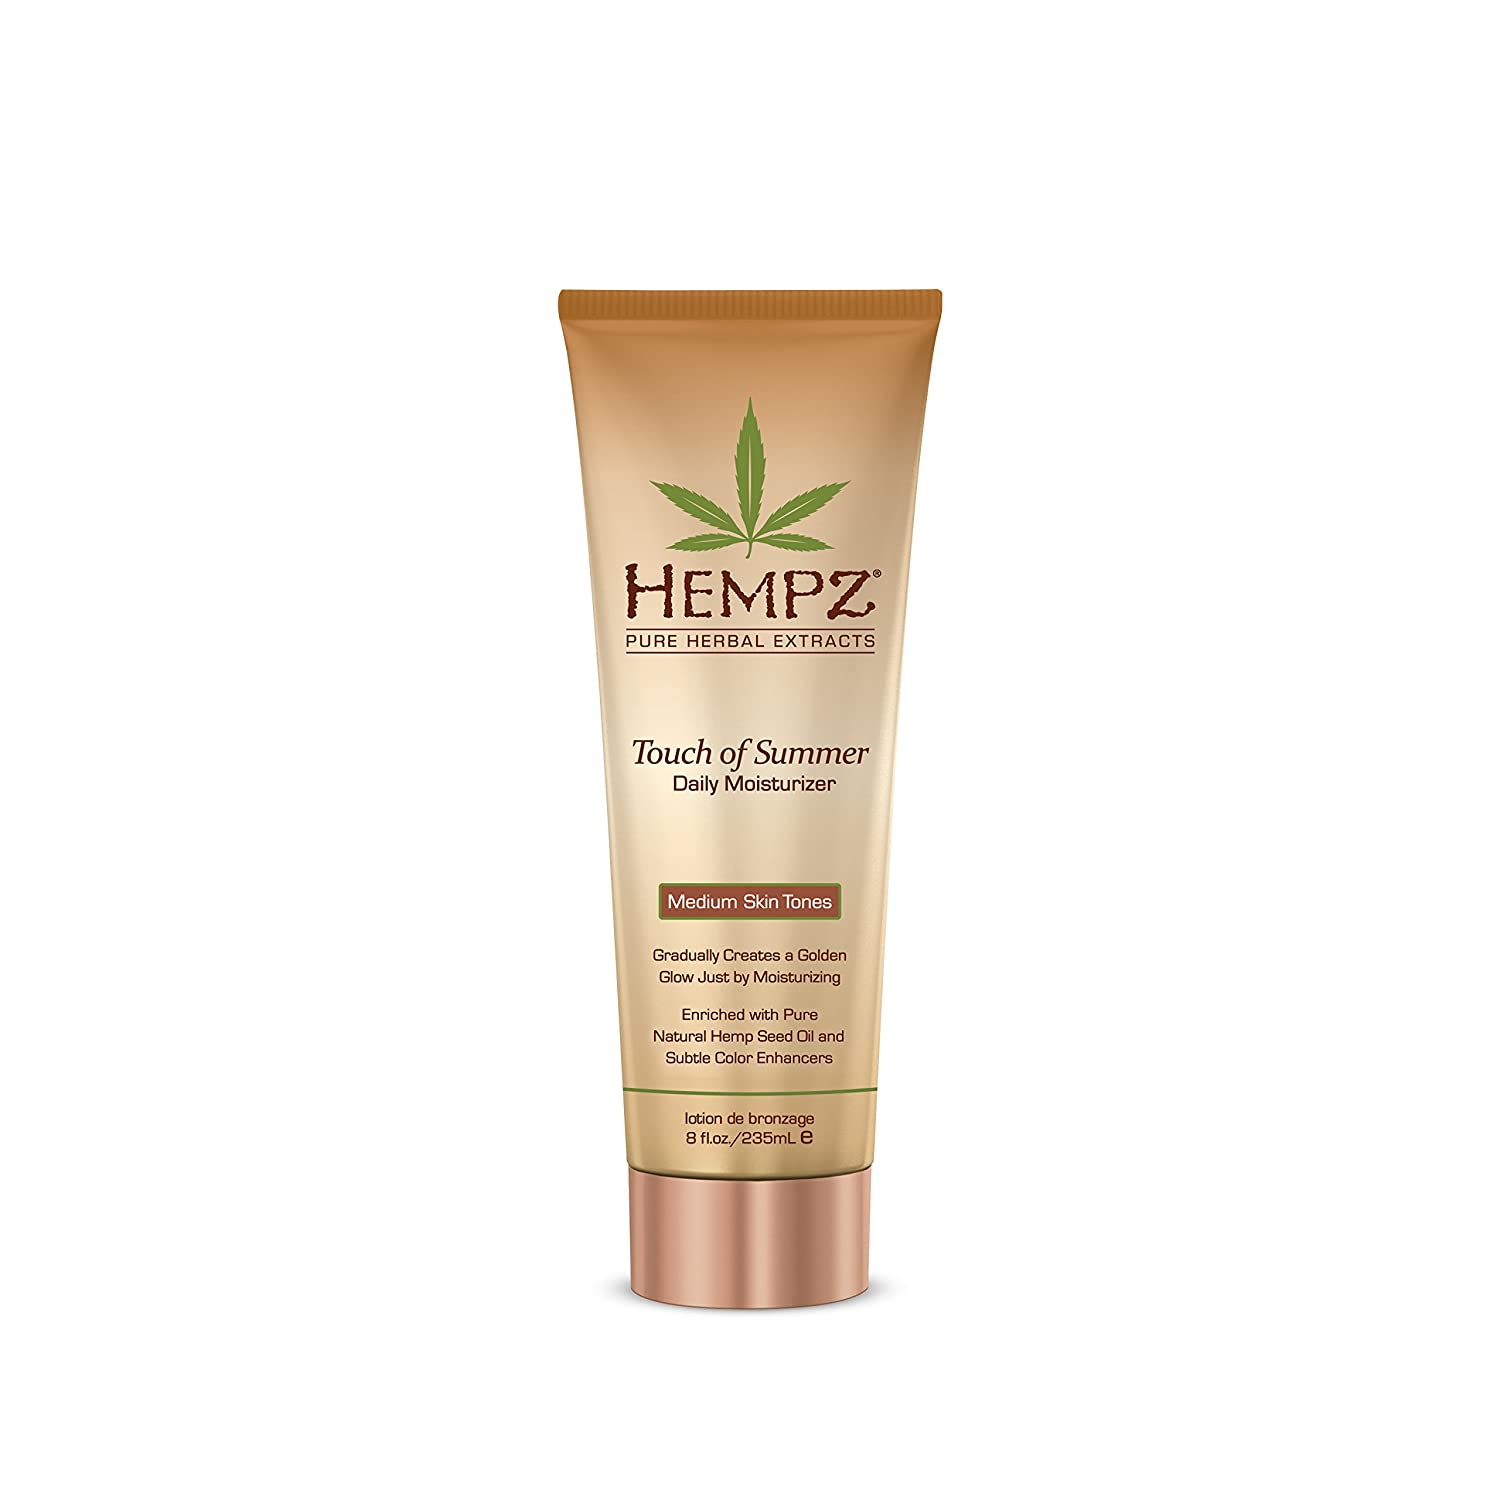 Hempz Touch of Summer Daily Moisturizer, Medium Skin Tones, 8 Fluid Ounce 110-2124-03 B00315B4CY